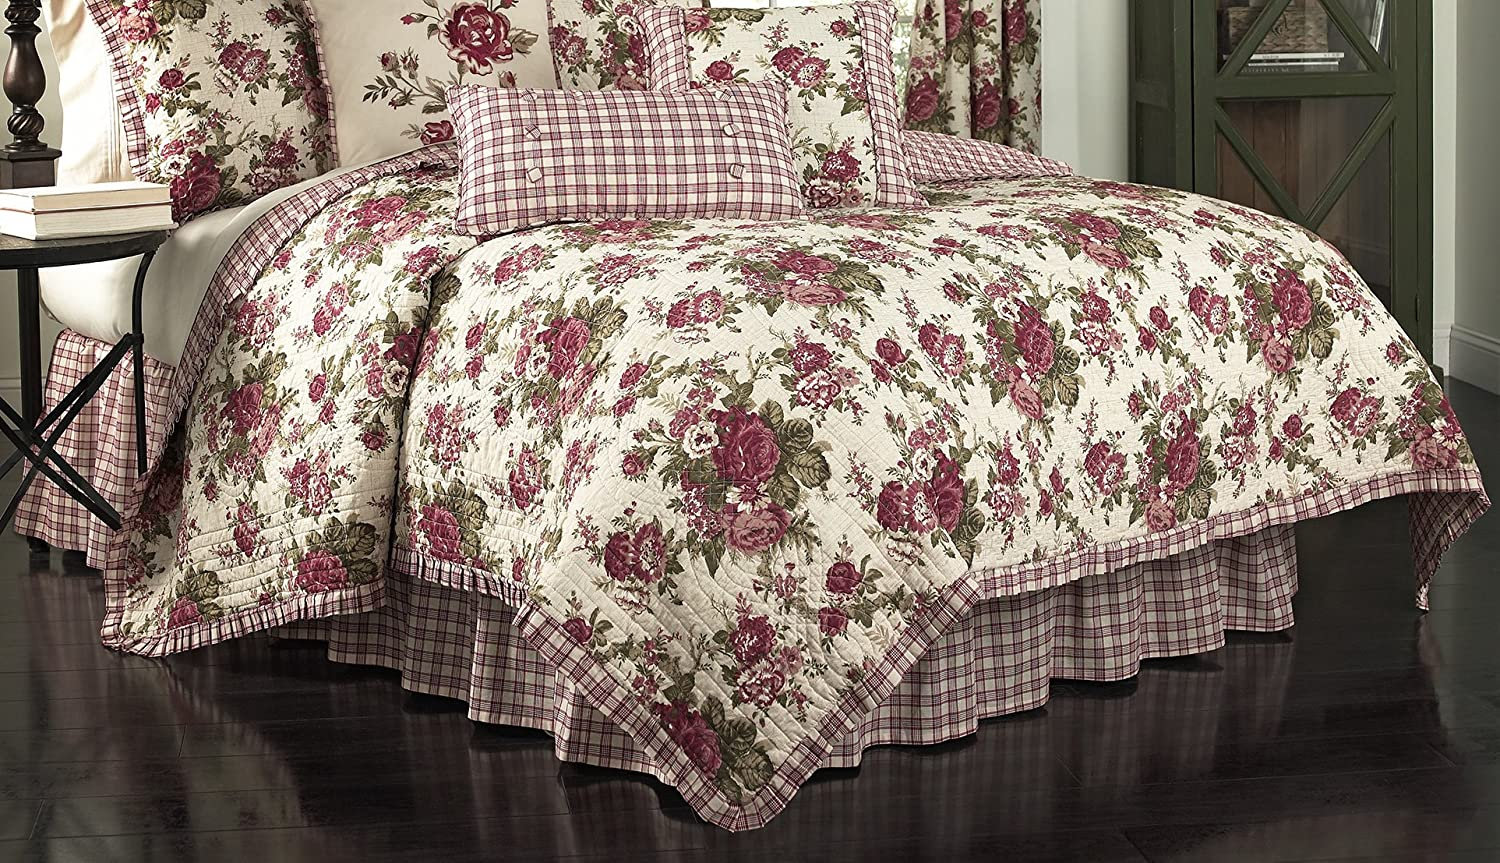 Waverly 14770BEDDF/QTSN Norfolk Reversible Quilt Collection, Tea Stain, Full/Queen Ellery Homestyles